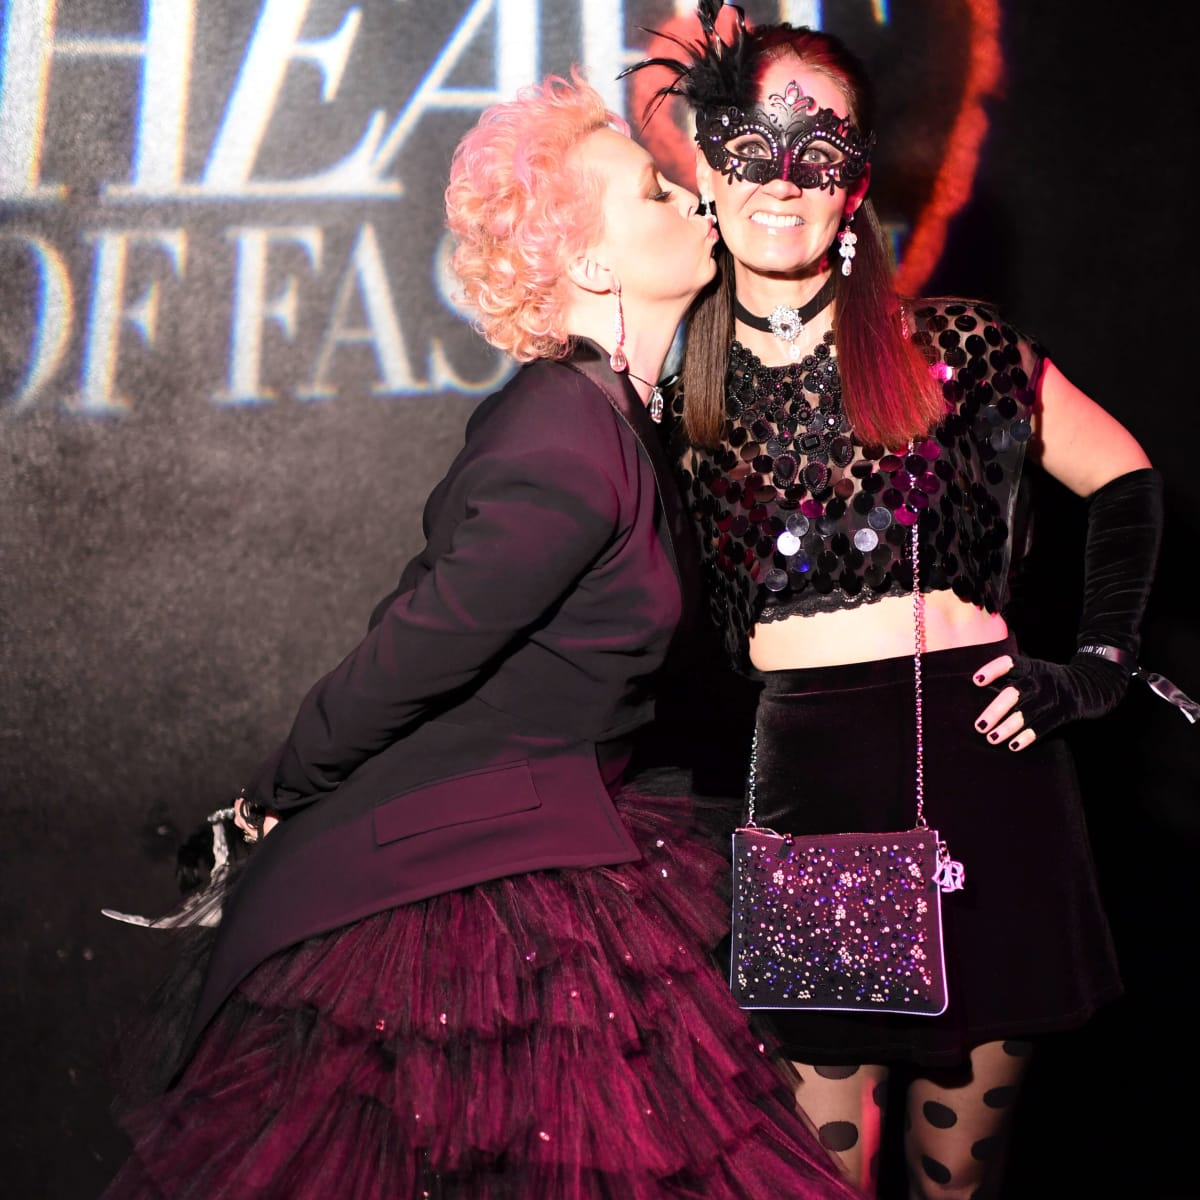 Heart of Fashion Masquerade Ball Vivian Wise, Beth Muecke